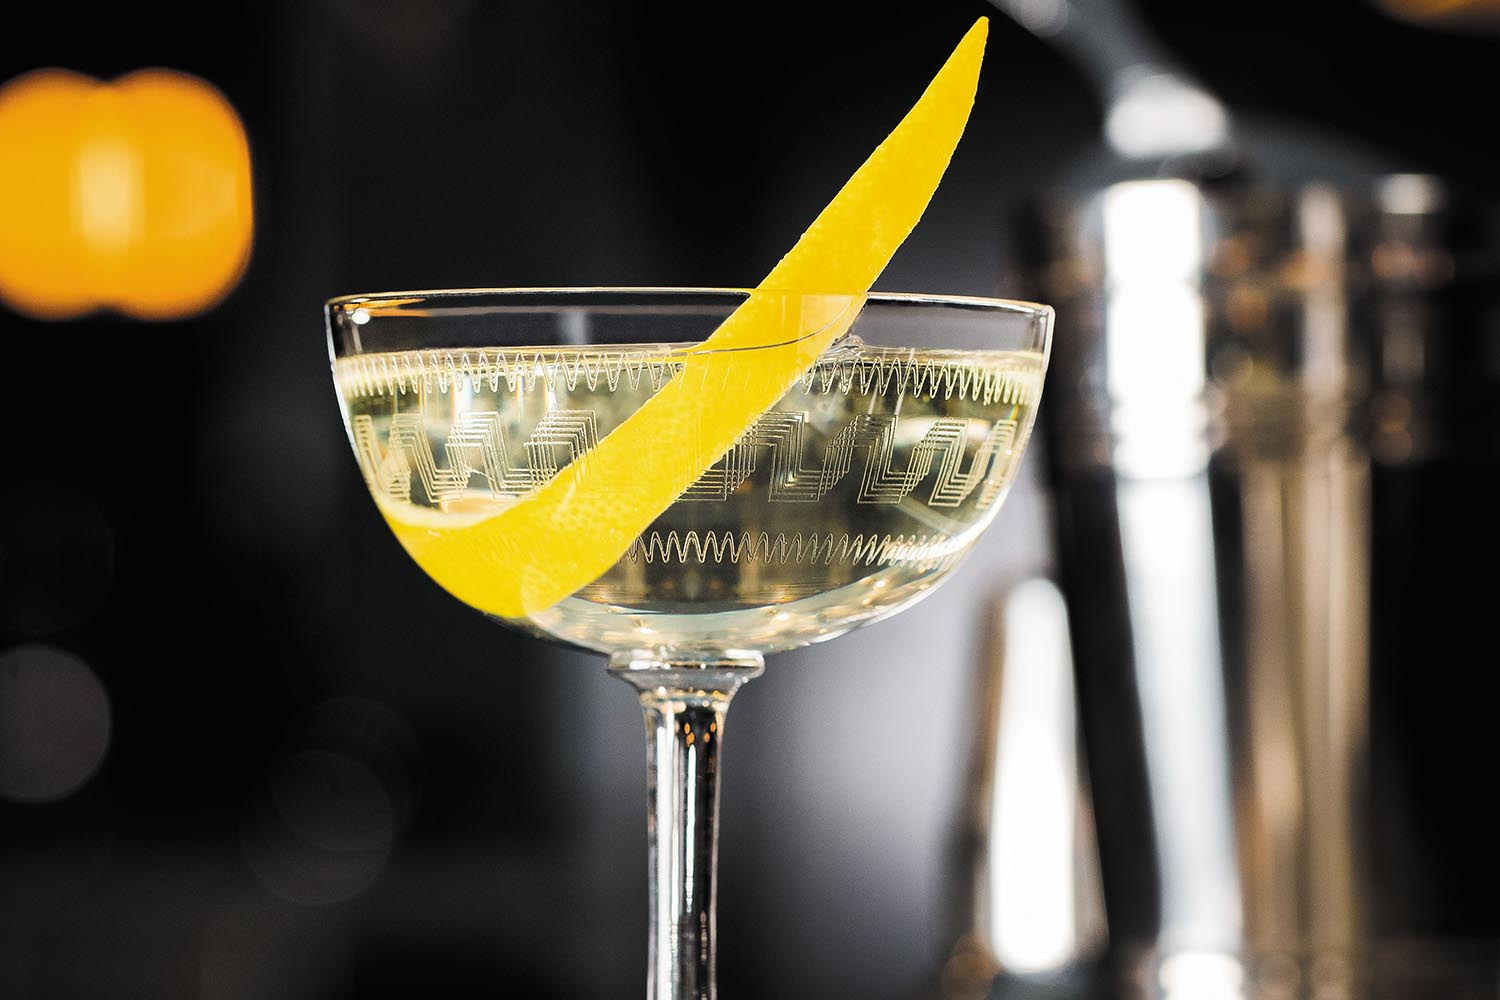 James Bond dry martini